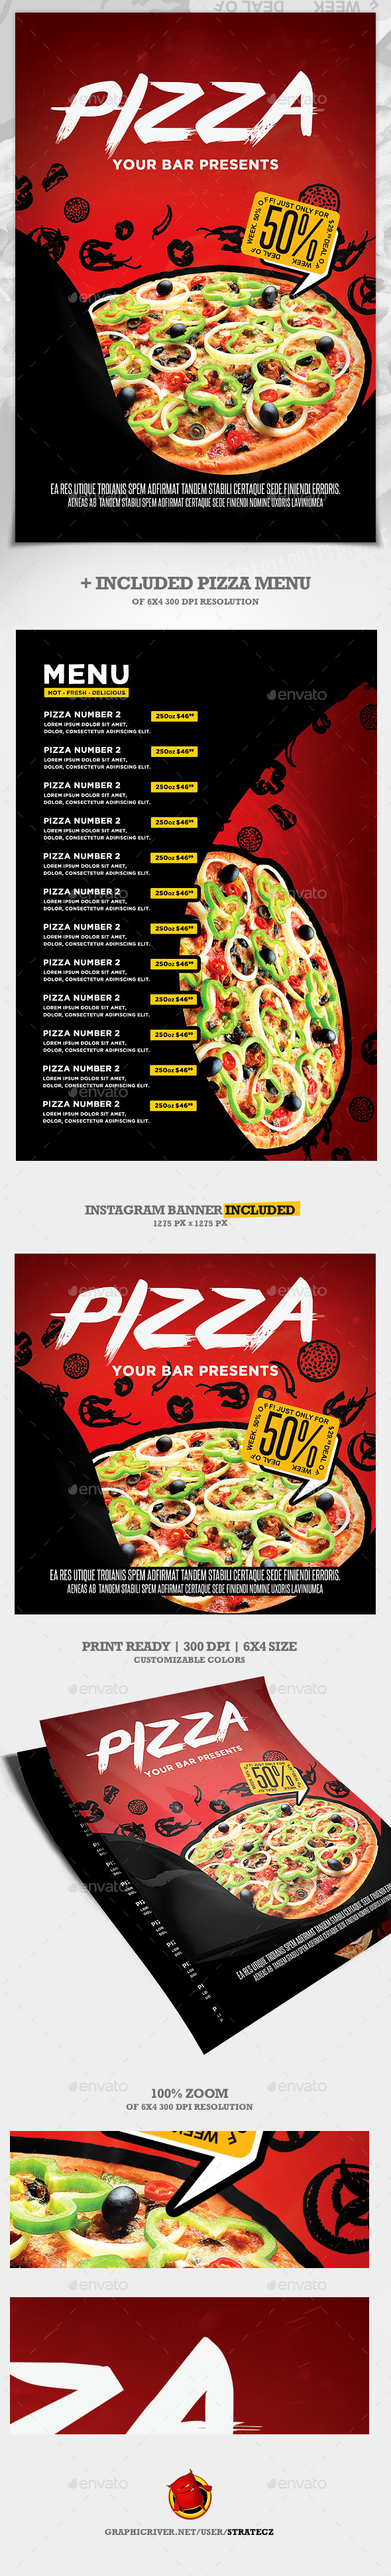 Pizza Flyer + Pizza Menu - Print Templates